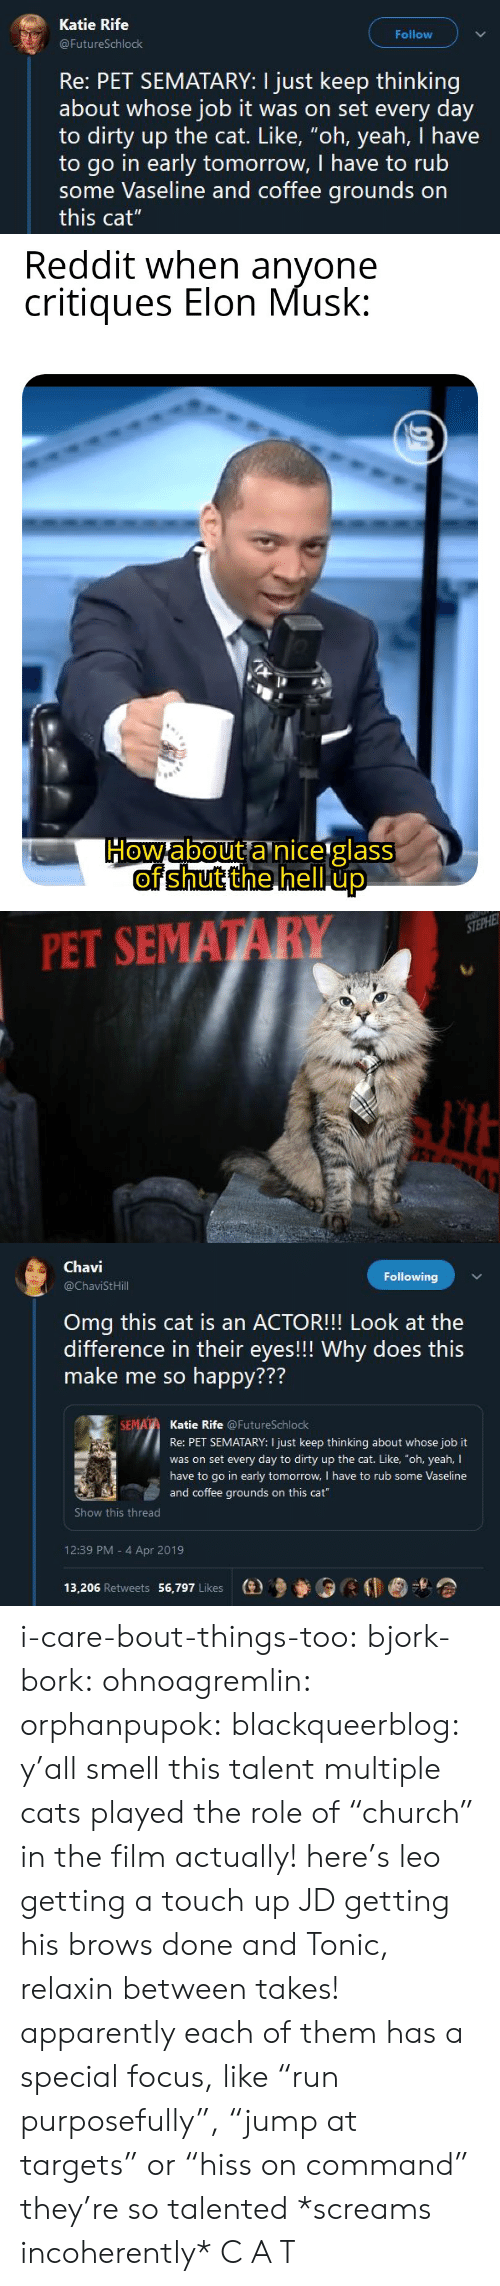 "talent: Katie Rife  Follow  FutureSchlock  Re: PET SEMATARY: I just keep thinking  about whose job it was on set every day  to dirty up the cat. Like, ""oh, yeah, I have  to go in early tomorrow, I have to rub  some Vaseline and coffee grounds on  this cat""   PET SEMATARY   Chavi  @ChaviStHill  Following  Omg this cat is an ACTOR!!! Look at the  difference in their eyes!!! Why does this  make me so happy???  772  Katie Rife @FutureSchlock  Re: PET SEMATARY: I just keep thinking about whose job it  was on set every day to dirty up the cat. Like, ""oh, yeah, I  have to go in early tomorrow, I have to rub some Vaseline  and coffee grounds on this cat  Show this thread  12:39 PM - 4 Apr 2019  13,206 Retweets 56,797 Likes  (e)乡參0 i-care-bout-things-too:  bjork-bork:  ohnoagremlin:  orphanpupok:  blackqueerblog: y'all smell this talent  multiple cats played the role of ""church"" in the film actually! here's leo getting a touch up JD getting his brows done and Tonic, relaxin between takes!   apparently each of them has a special focus, like ""run purposefully"", ""jump at targets"" or ""hiss on command"" they're so talented     *screams incoherently* C A T"